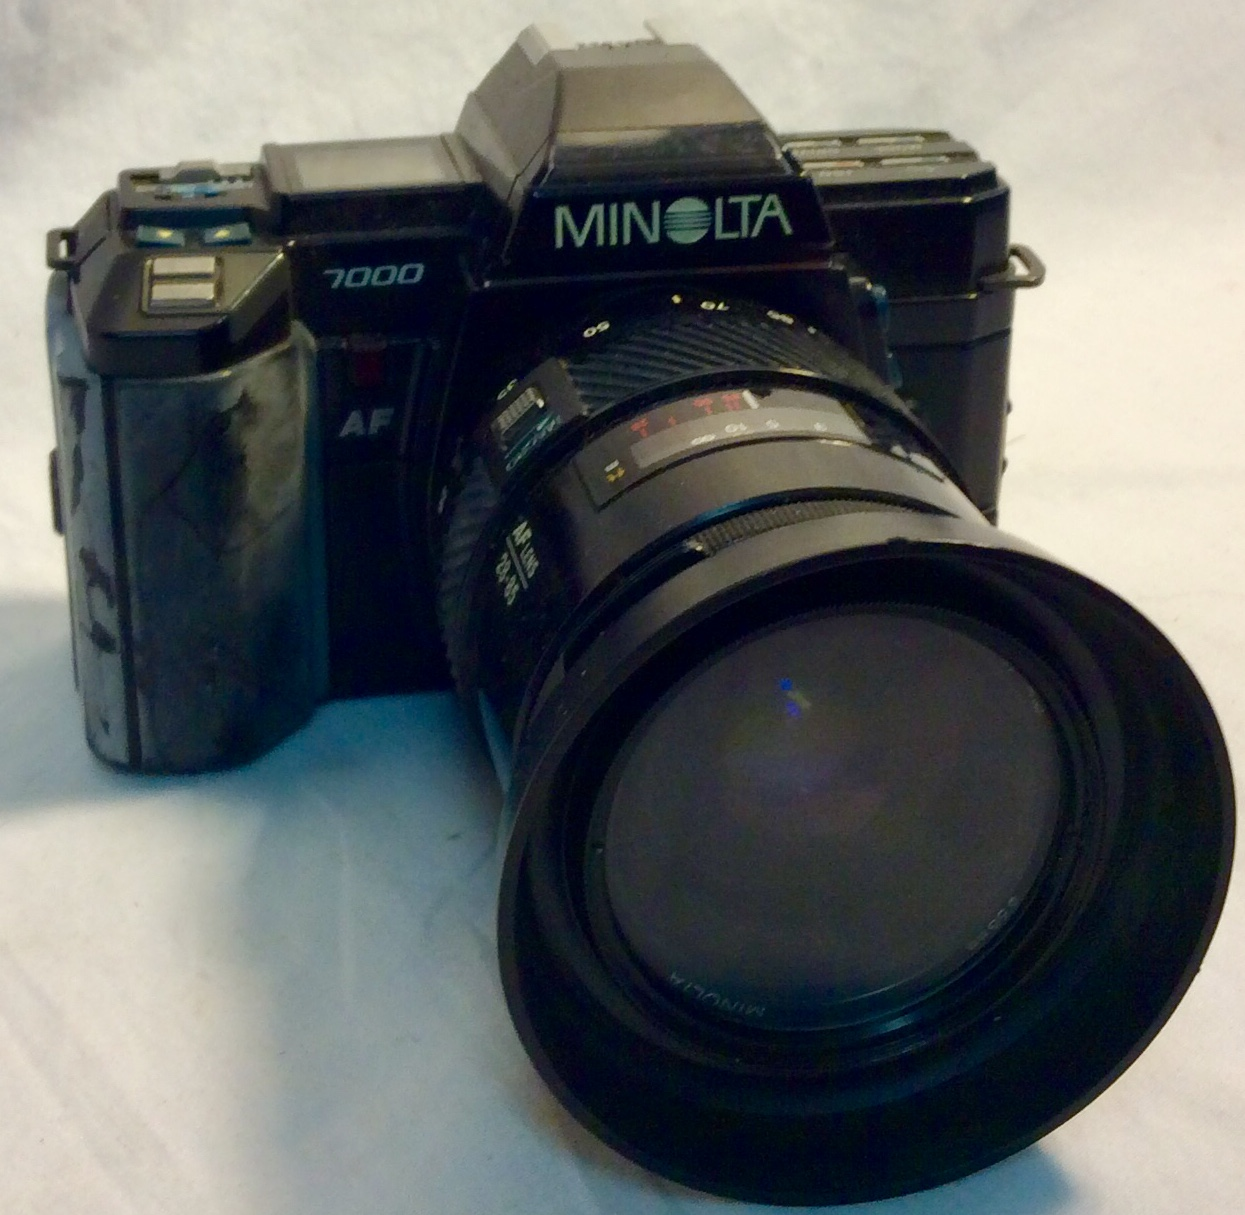 Minolta Maxxum 7000 Camera with attached auto focus zoom lens